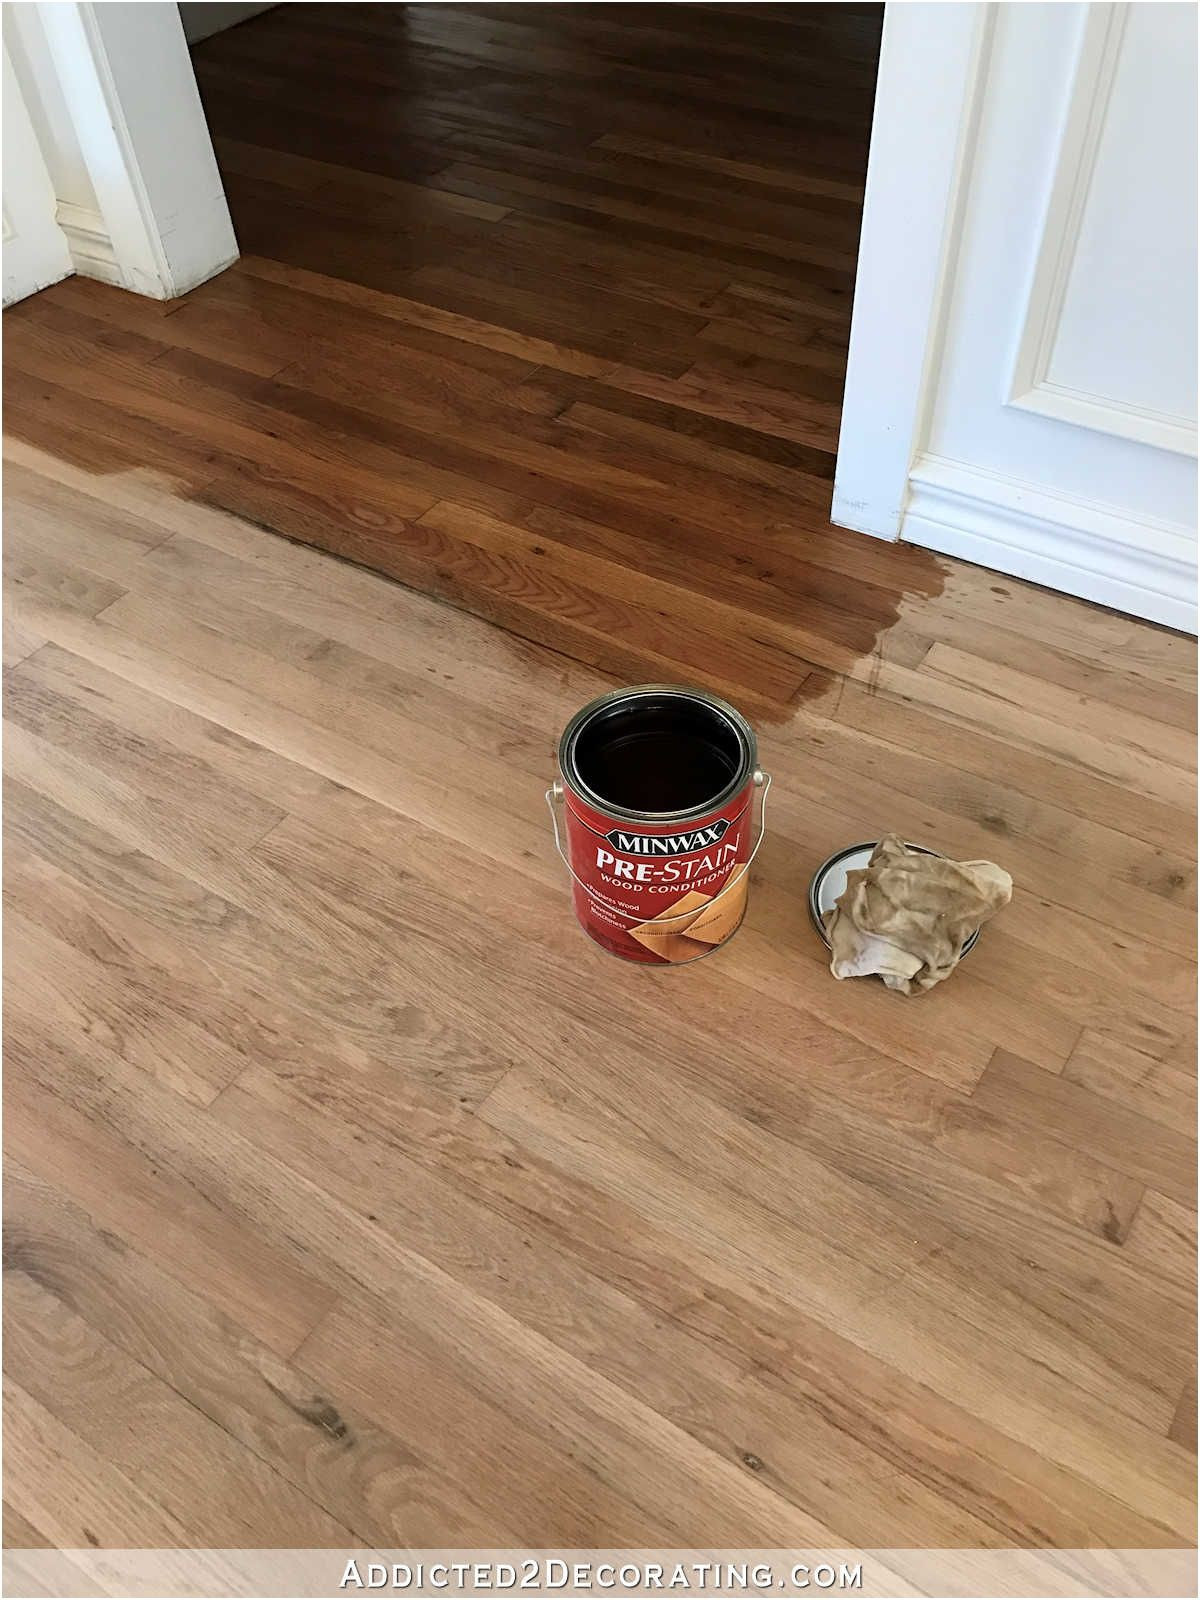 hardwood flooring cost square foot installed of the wood maker page 5 wood wallpaper with cost to remove carpet and install laminate flooring graphies concept concepts of laminate wood flooring cost